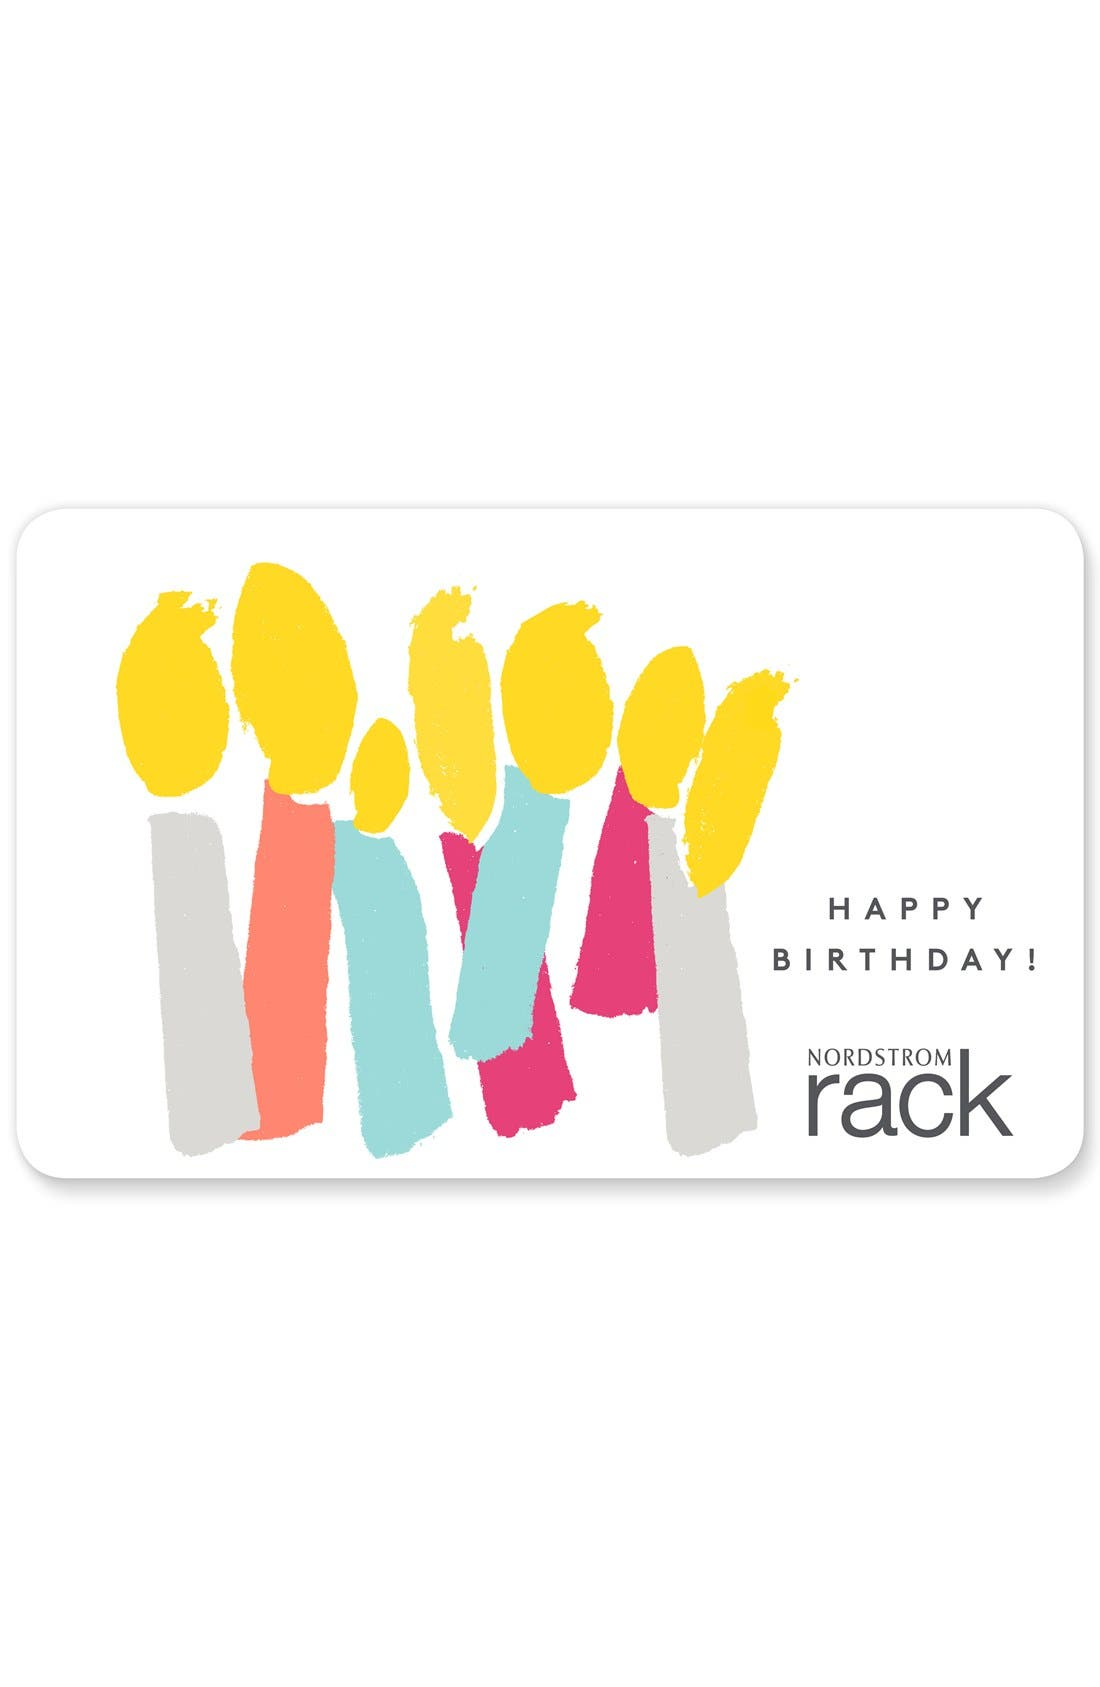 Nordstrom Rack Birthday Candles Gift Card